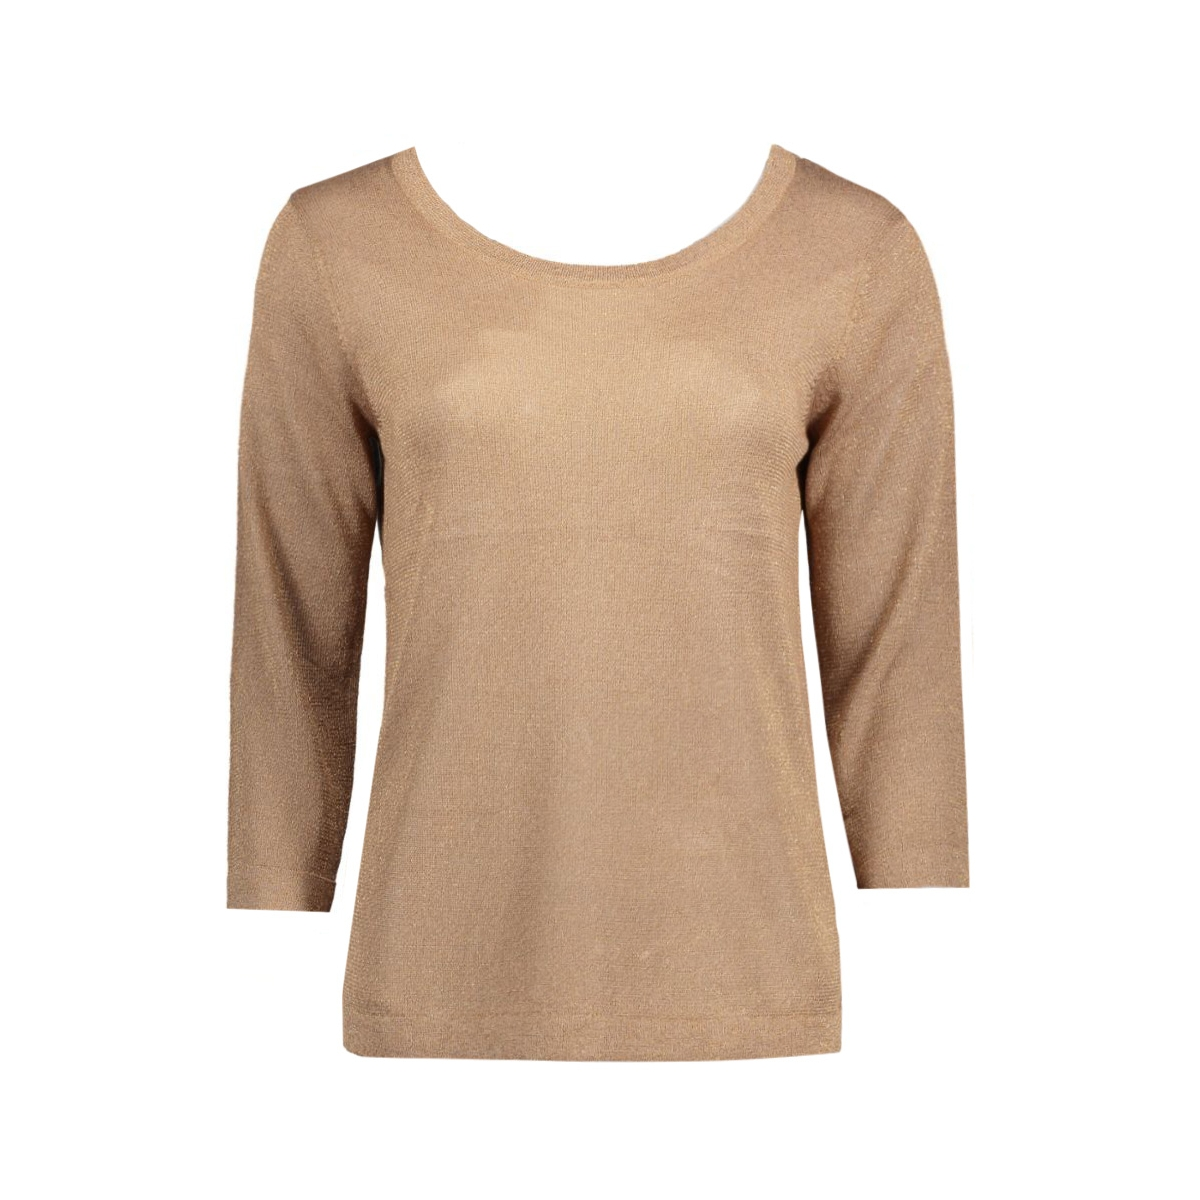 objbrooklyn 3/4 knit top 23023500 object t-shirt ginger snap